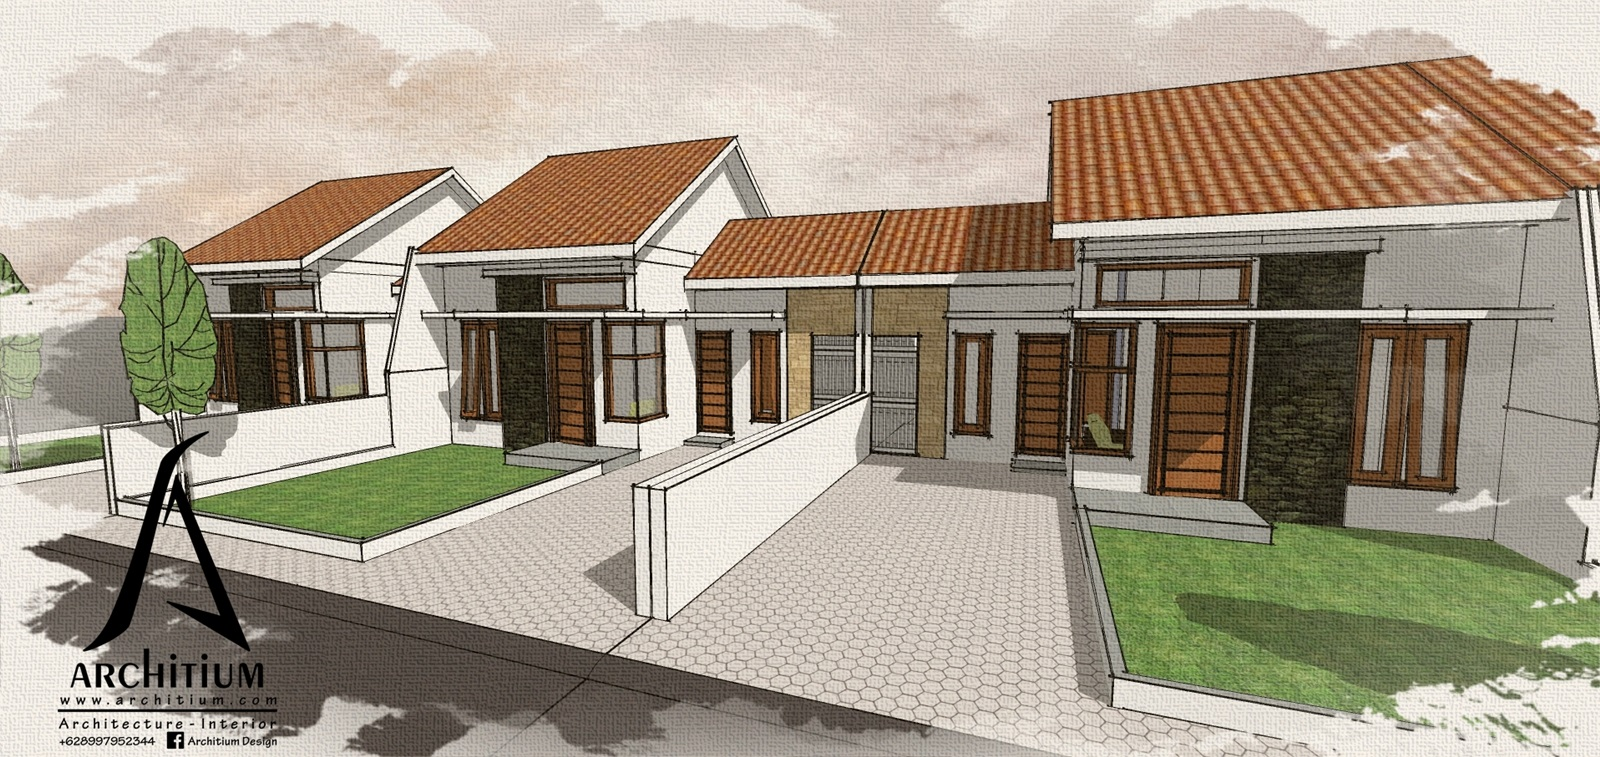 Architecture-House-Bandung-Ciganitri-Cluster-Housing 1